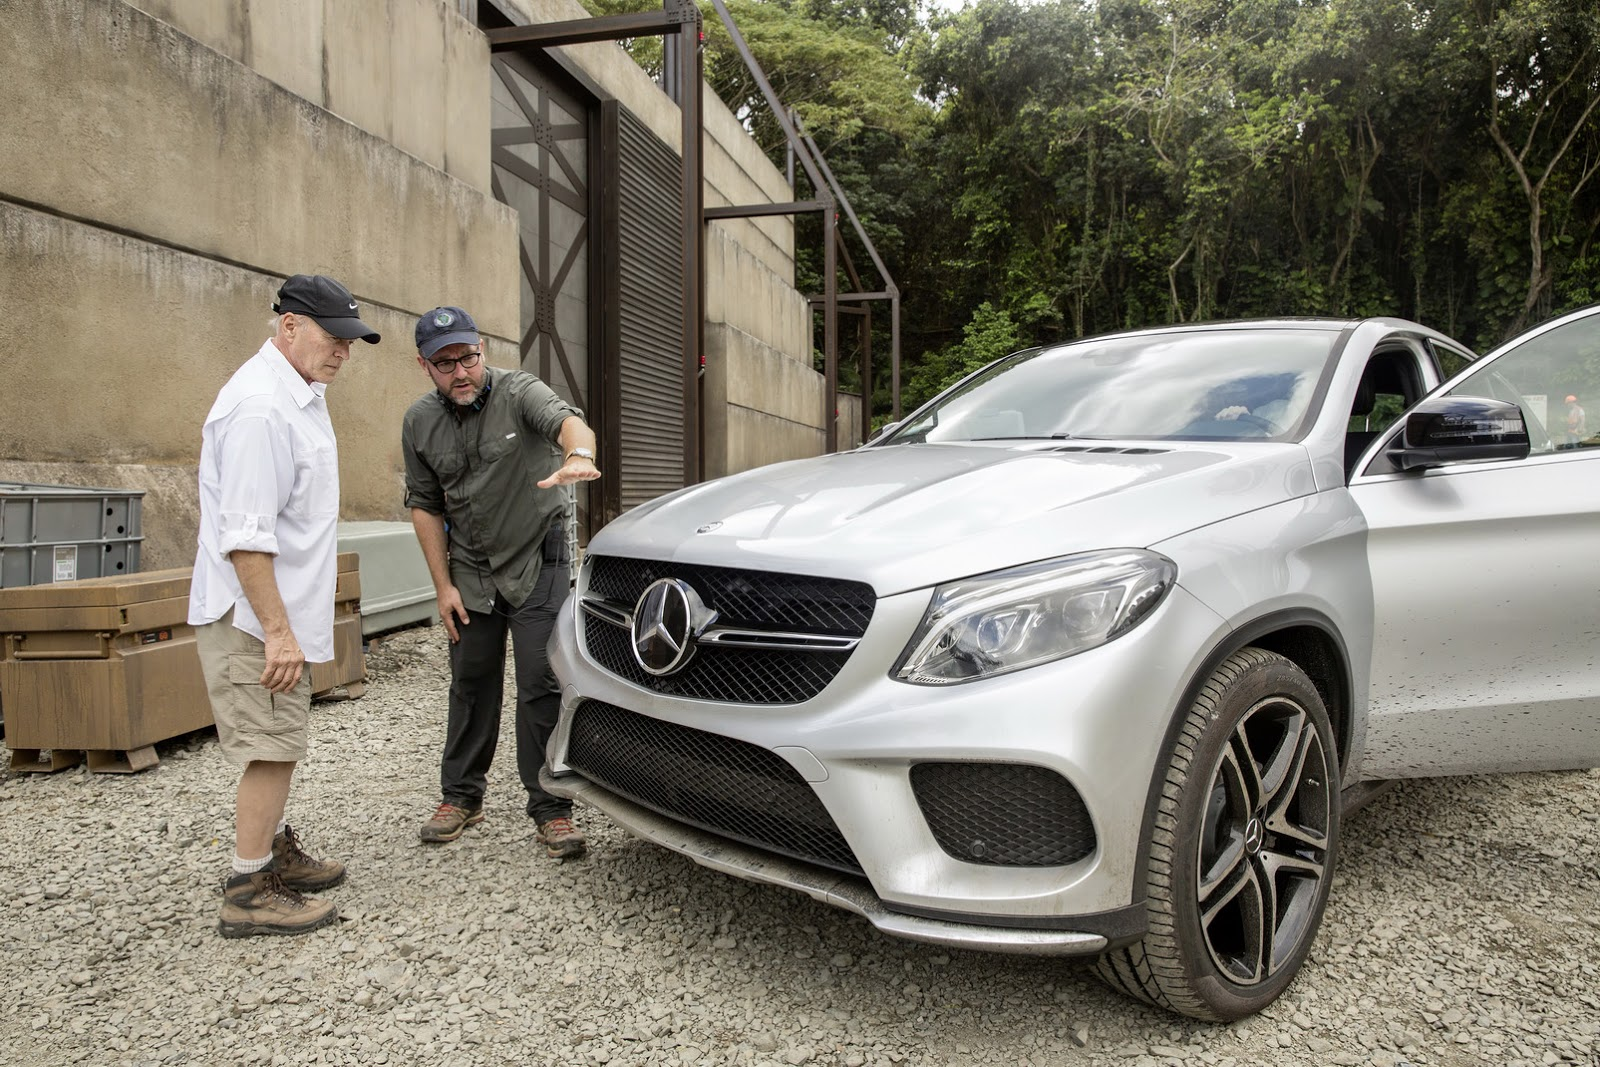 mercedes teases new gle 63 amg coupe confirms jurassic park movie appearance. Black Bedroom Furniture Sets. Home Design Ideas